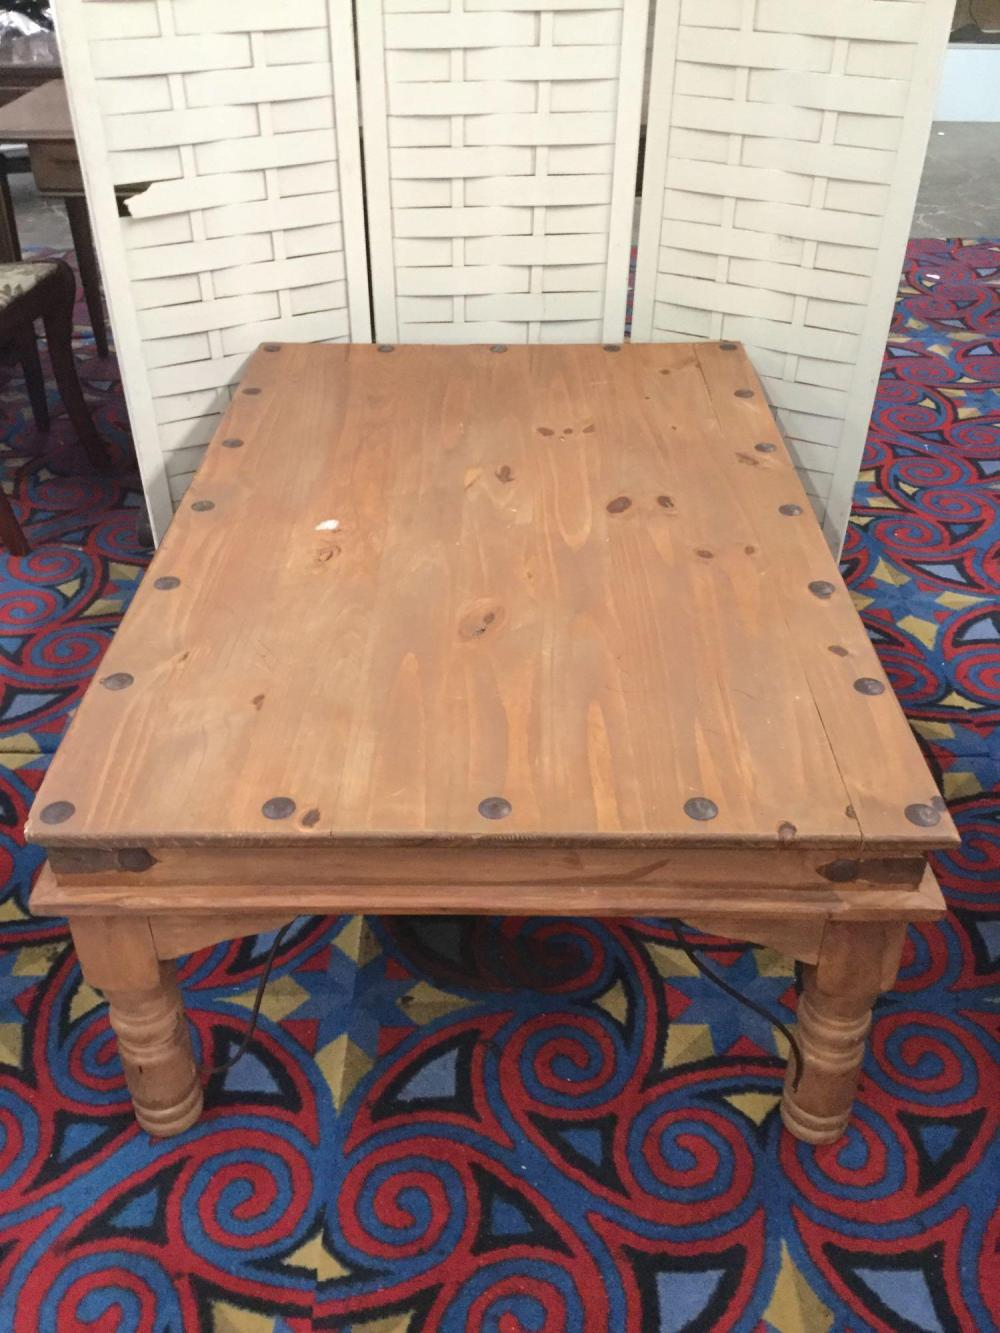 Large vintage Mexican made wormwood Mission style coffee table - has some damage as is